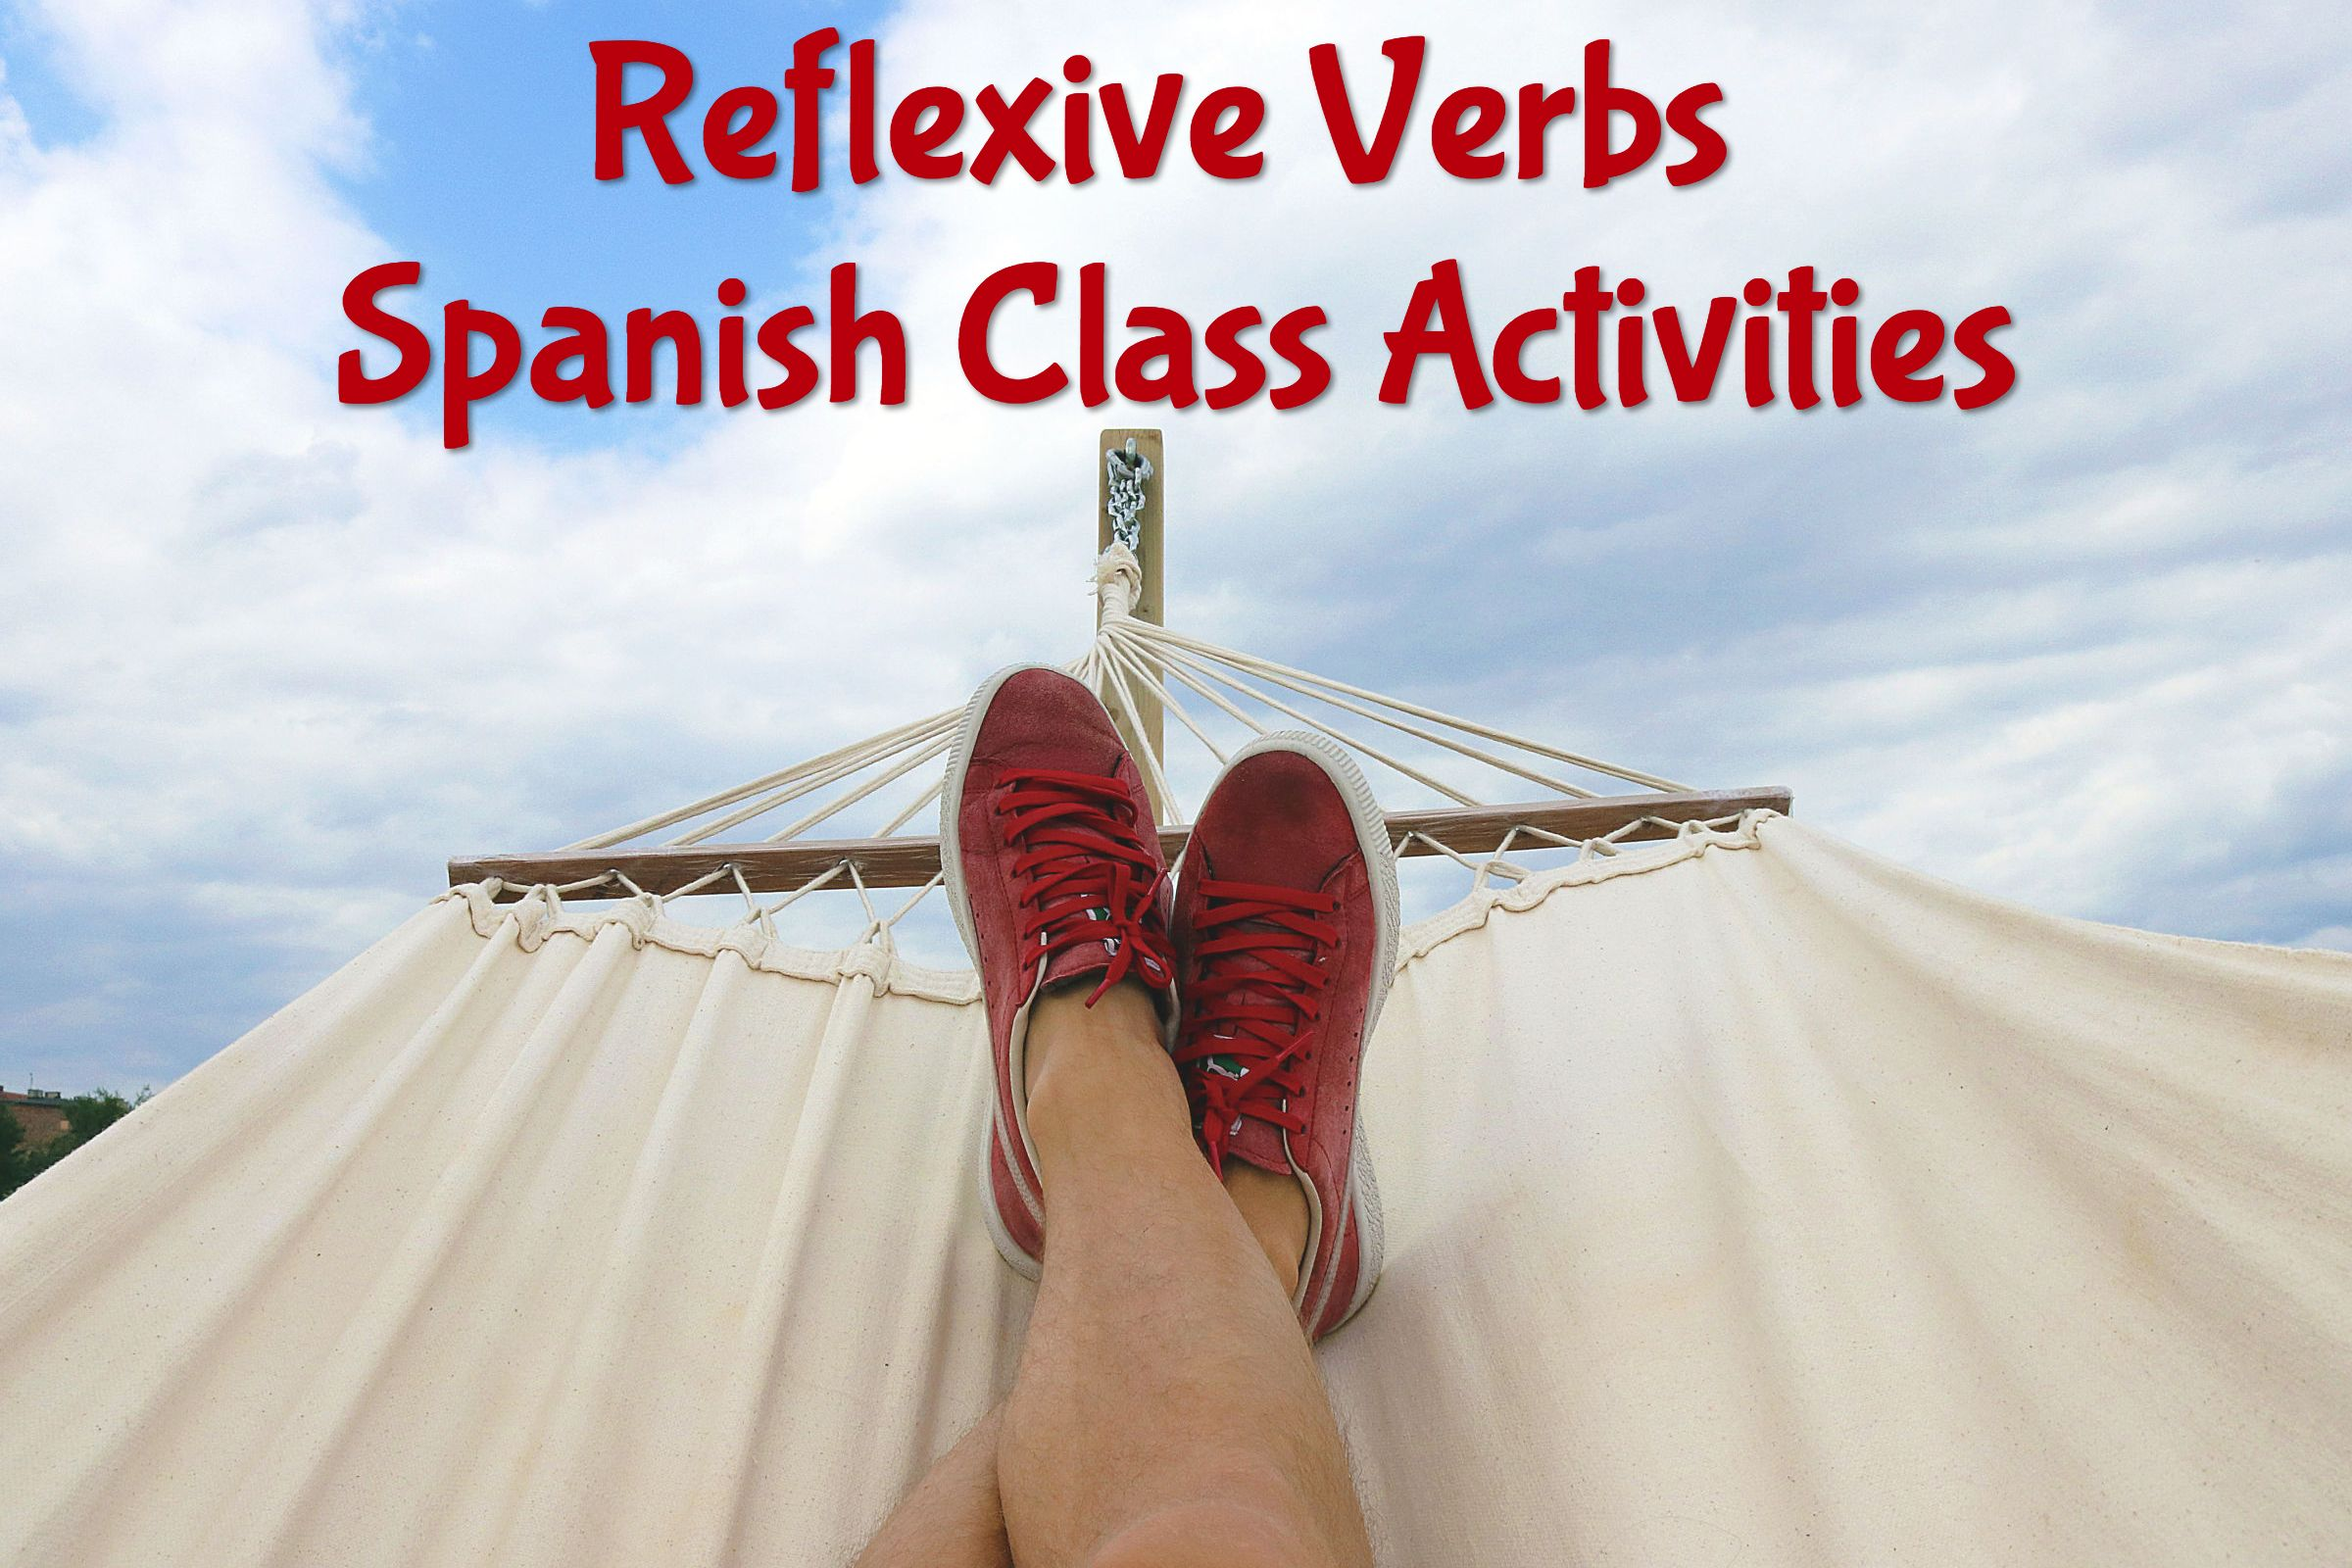 Reflexive Verbs Spanish Class Activities